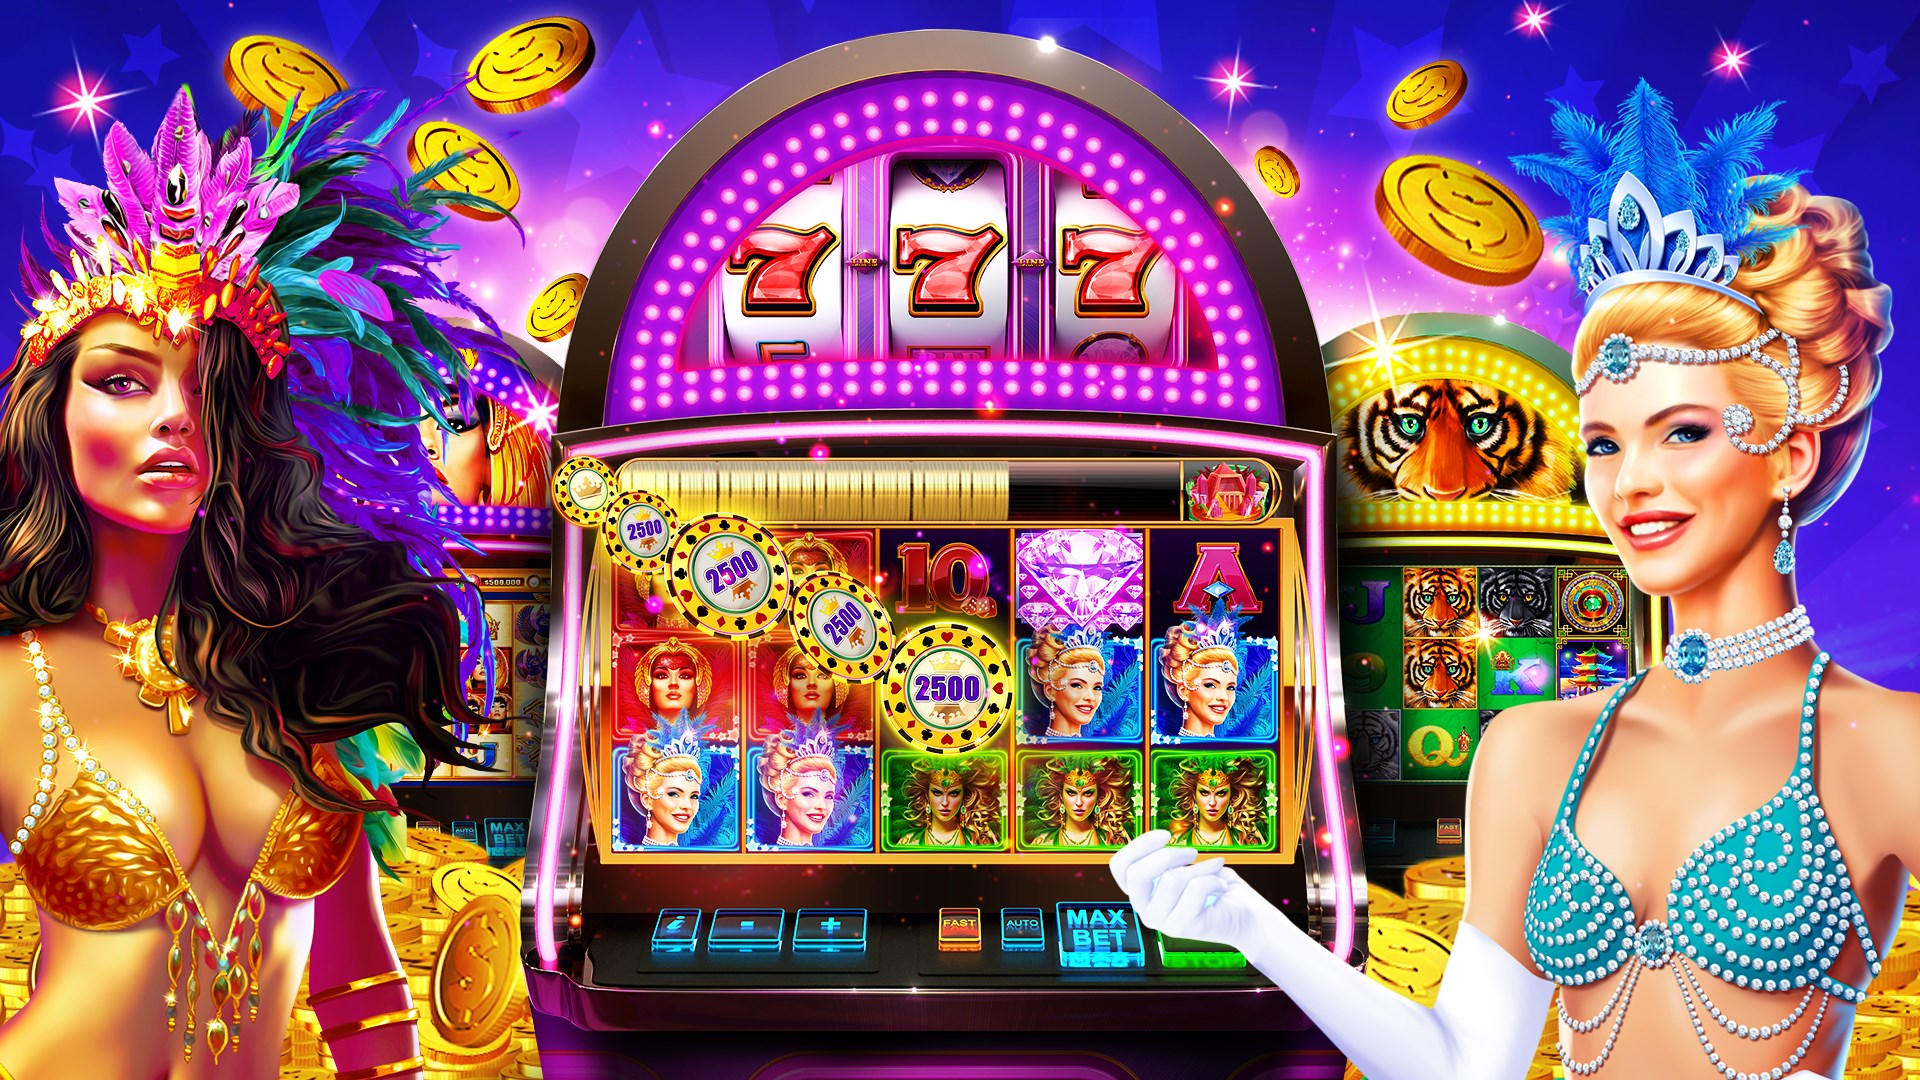 Free Online Slots Games For Fun